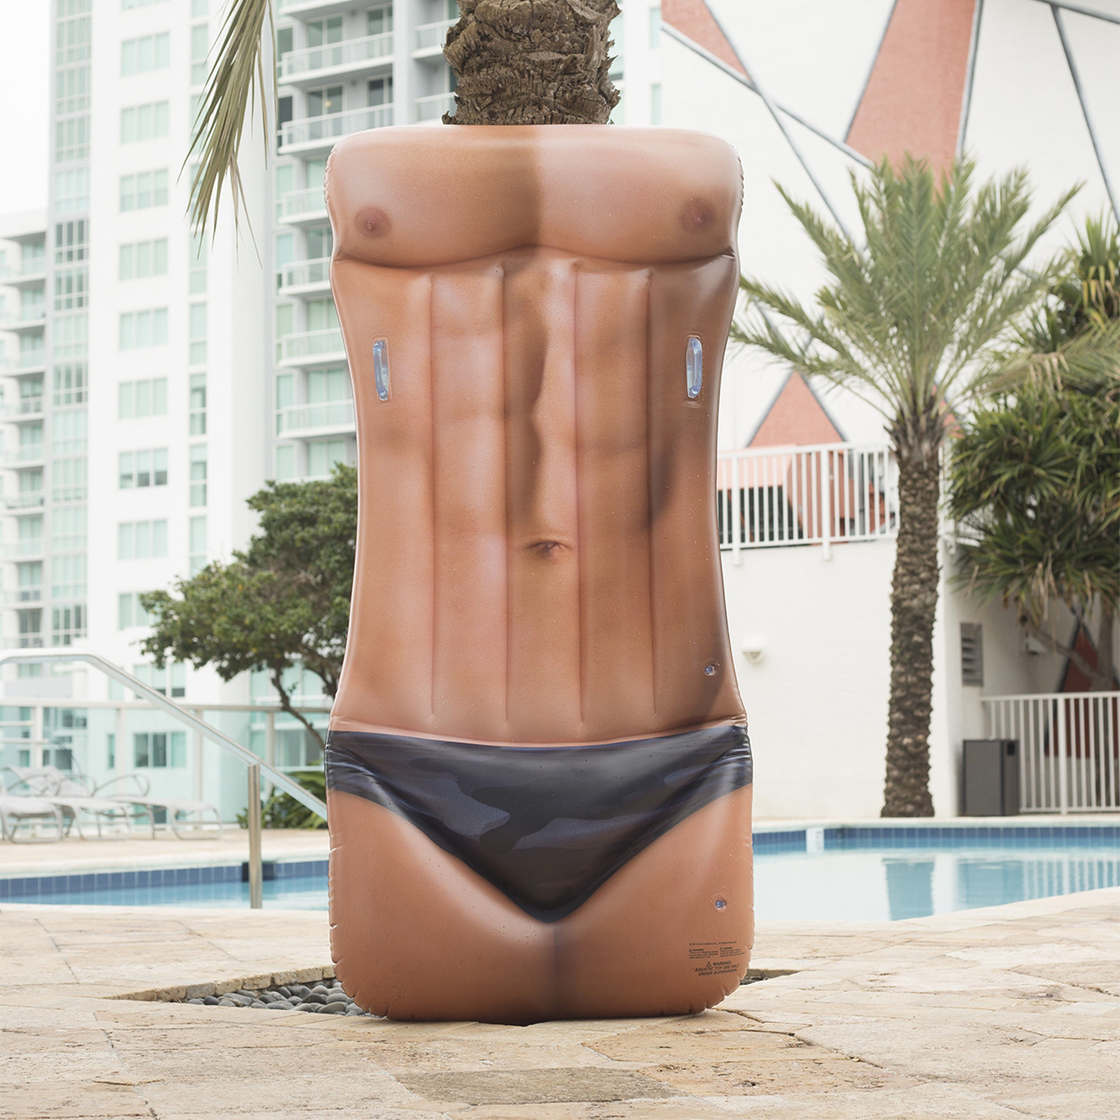 The 15 worst inflatable mattresses you'll see this summer